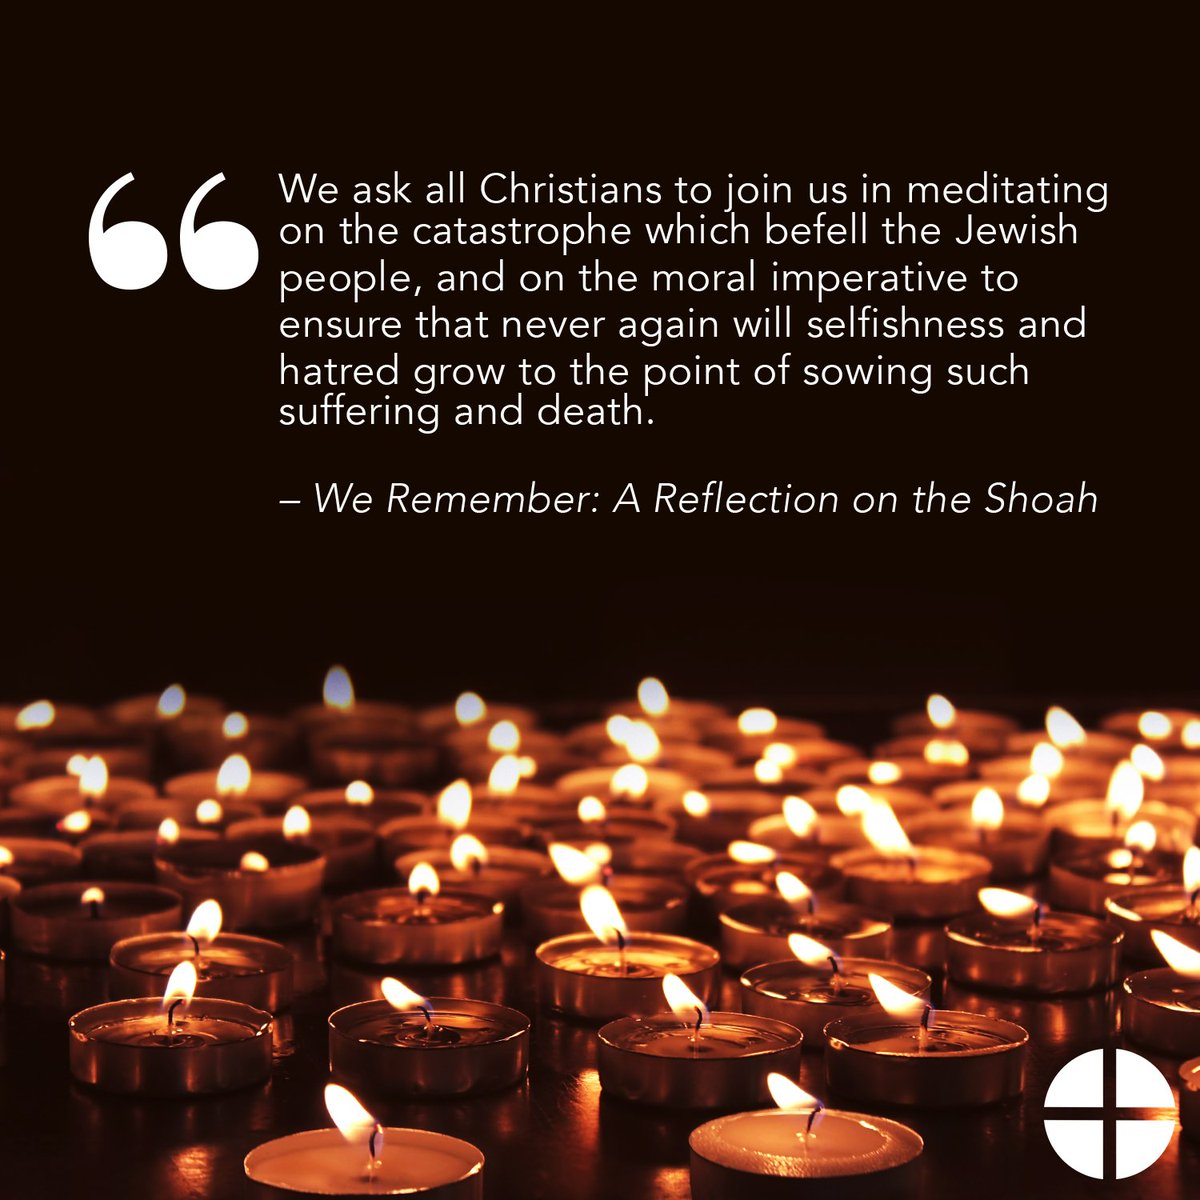 """test Twitter Media - 20 years ago today, the publication of """"We Remember: A Reflection on the Shoah"""" was an important milestone in Catholic-Jewish dialogue. Today we pray for friendship between Christians and Jews, that God continue to allow us to be a blessing to one another. https://t.co/LJ6iRYRFxC https://t.co/nvtQWsRDek"""